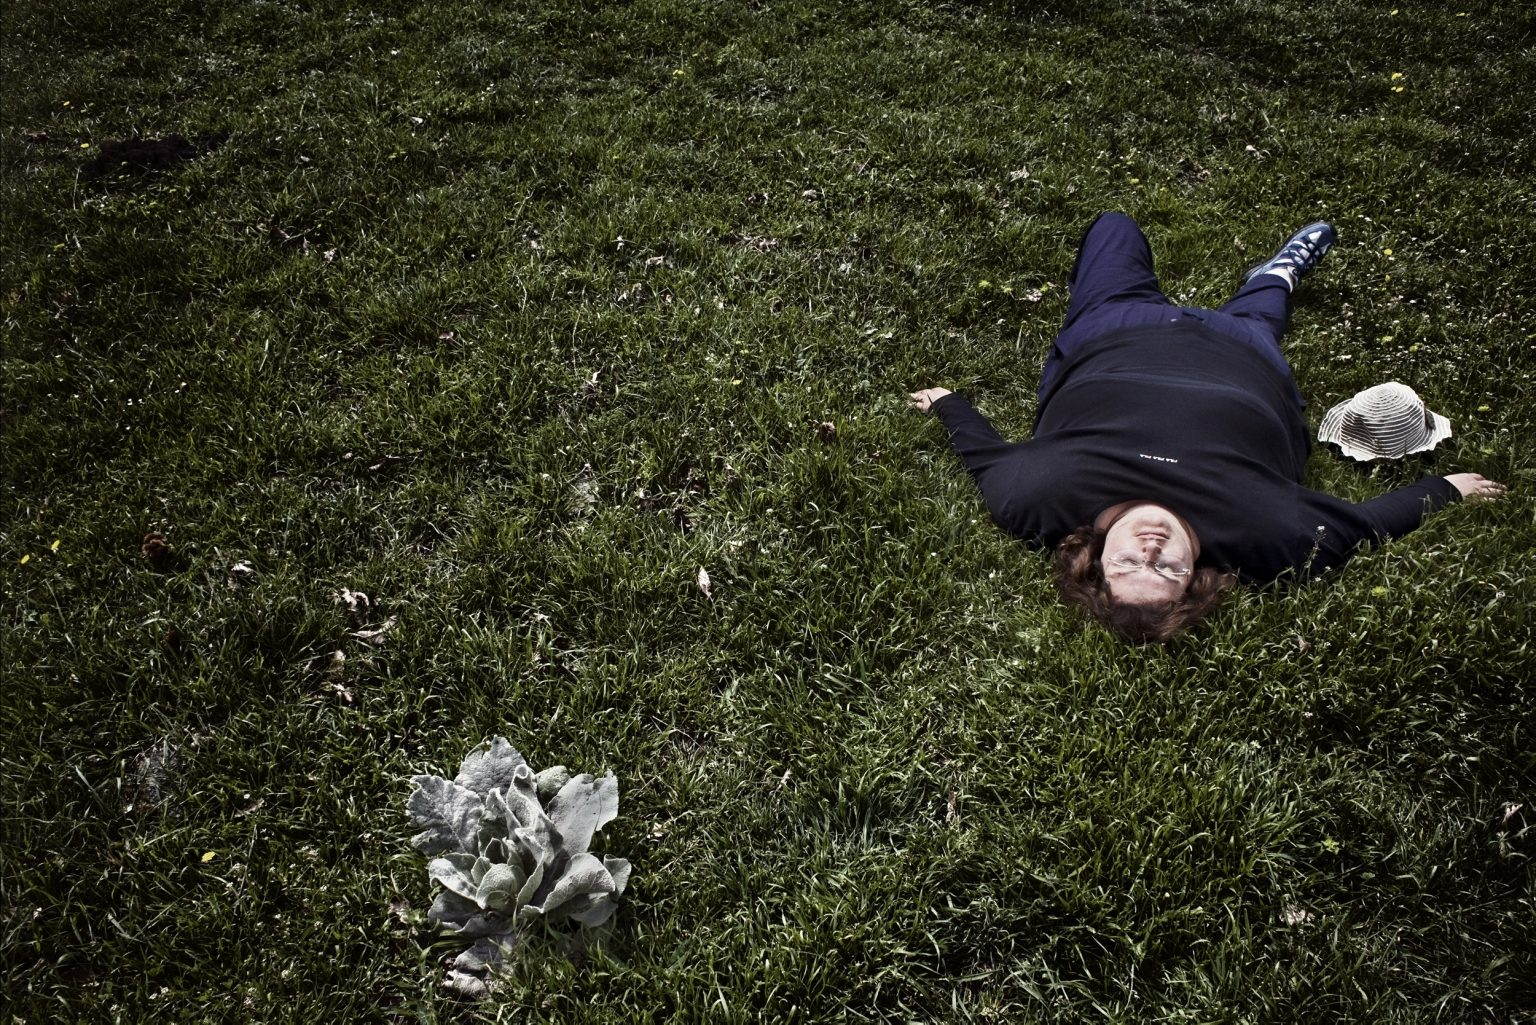 Angela lying on the lawn. Maccarese, Rome, Italy, 2008